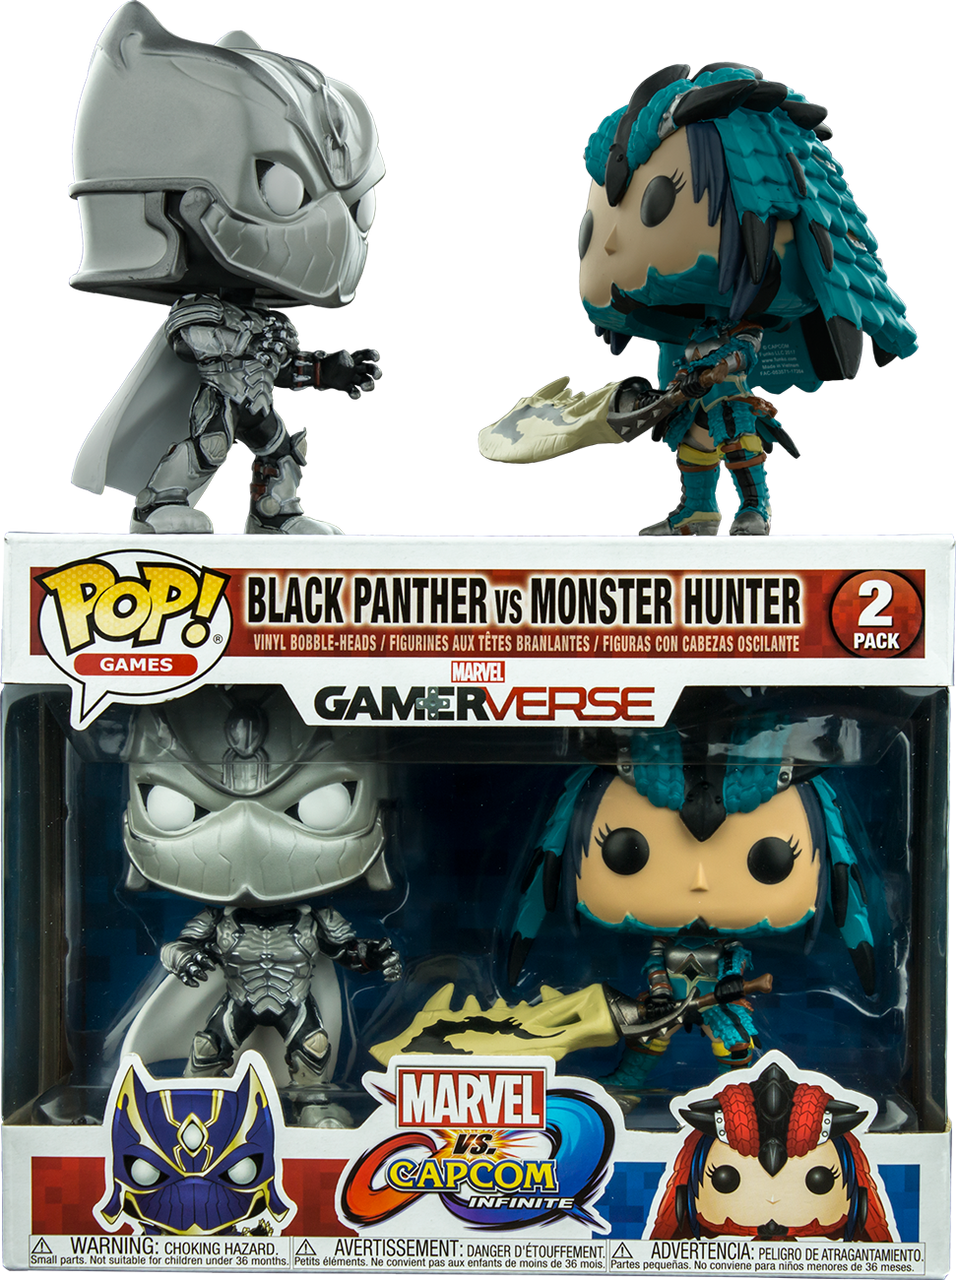 Marvel Vs Capcom Infinite Black Panther Vs Monster